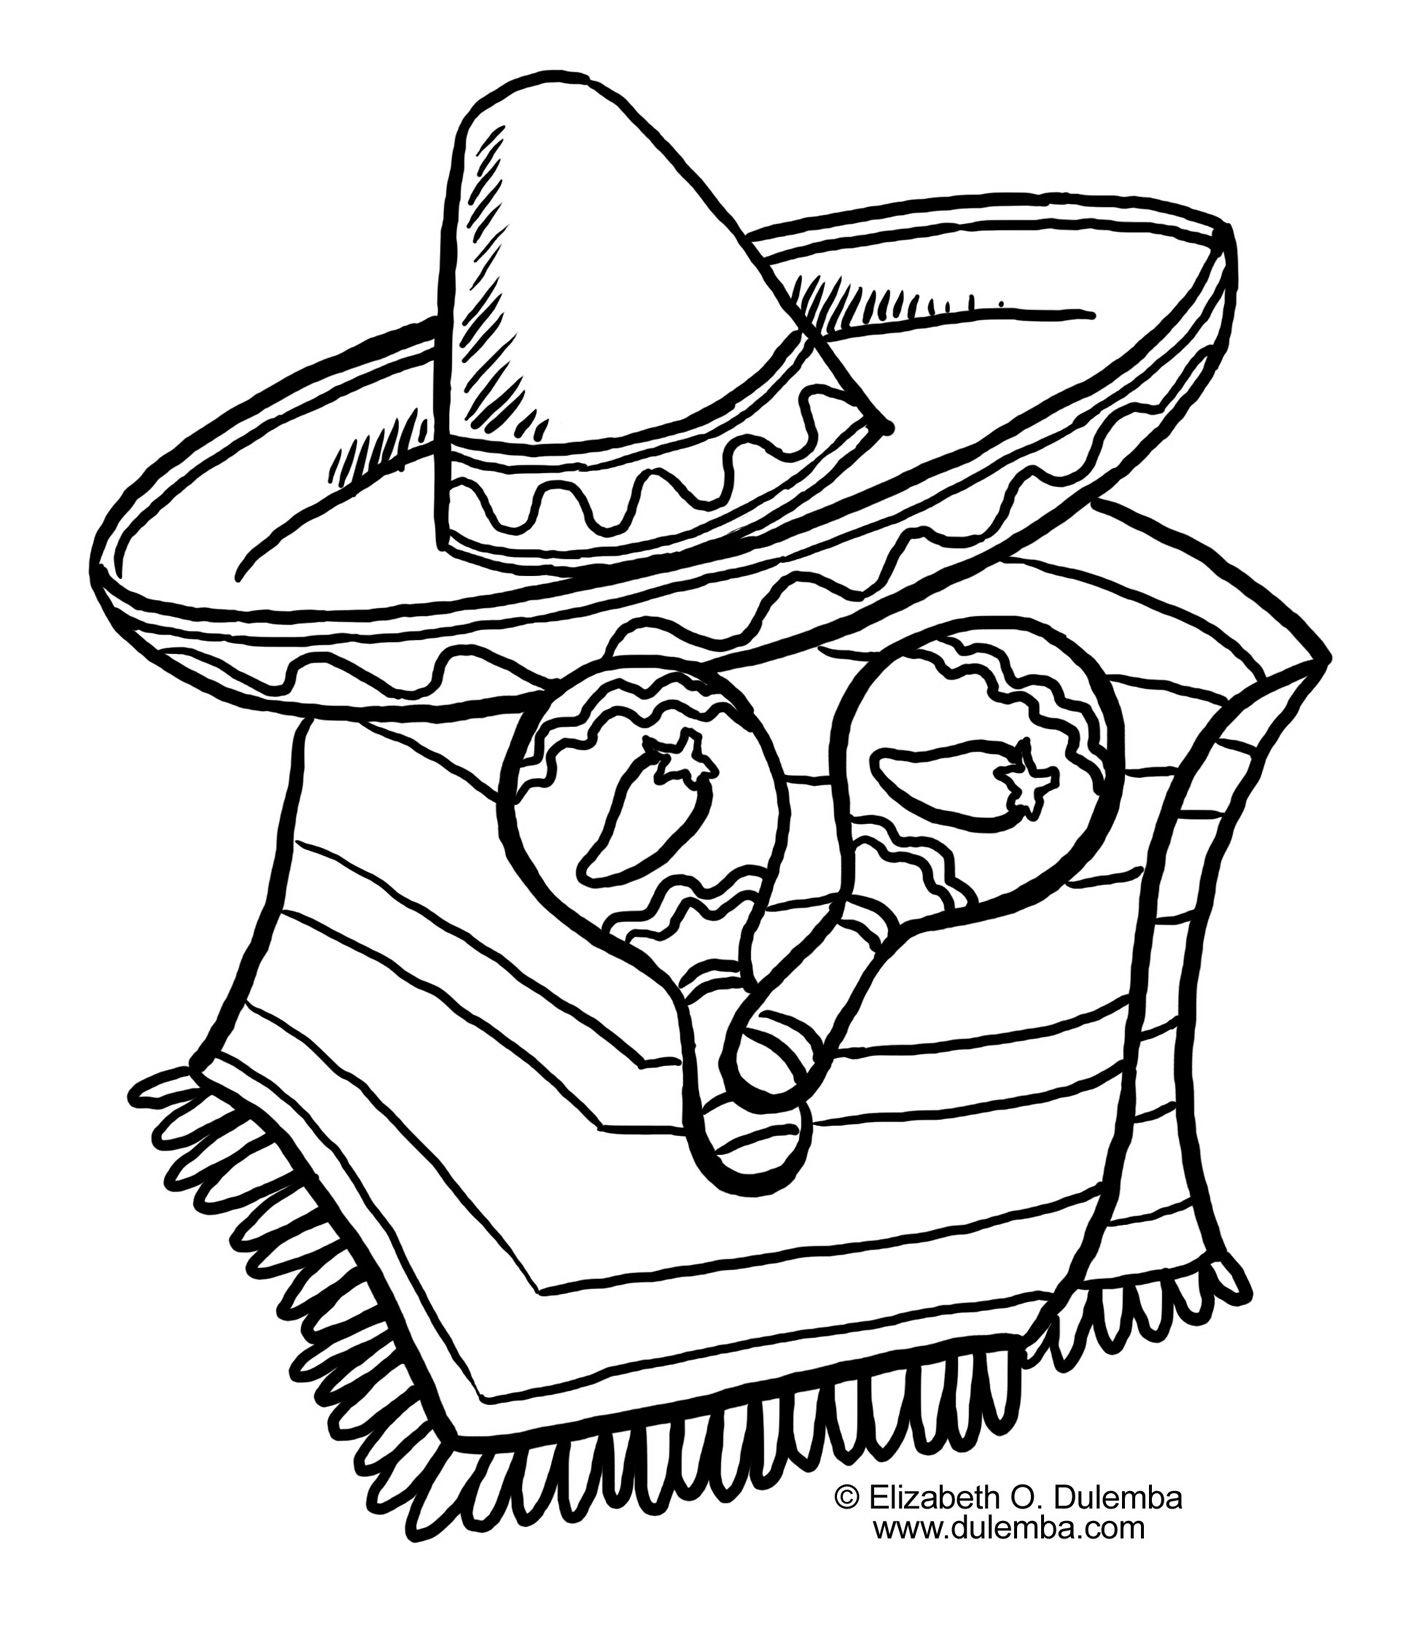 Drawings Of Cactus With Sombrero And Maracas